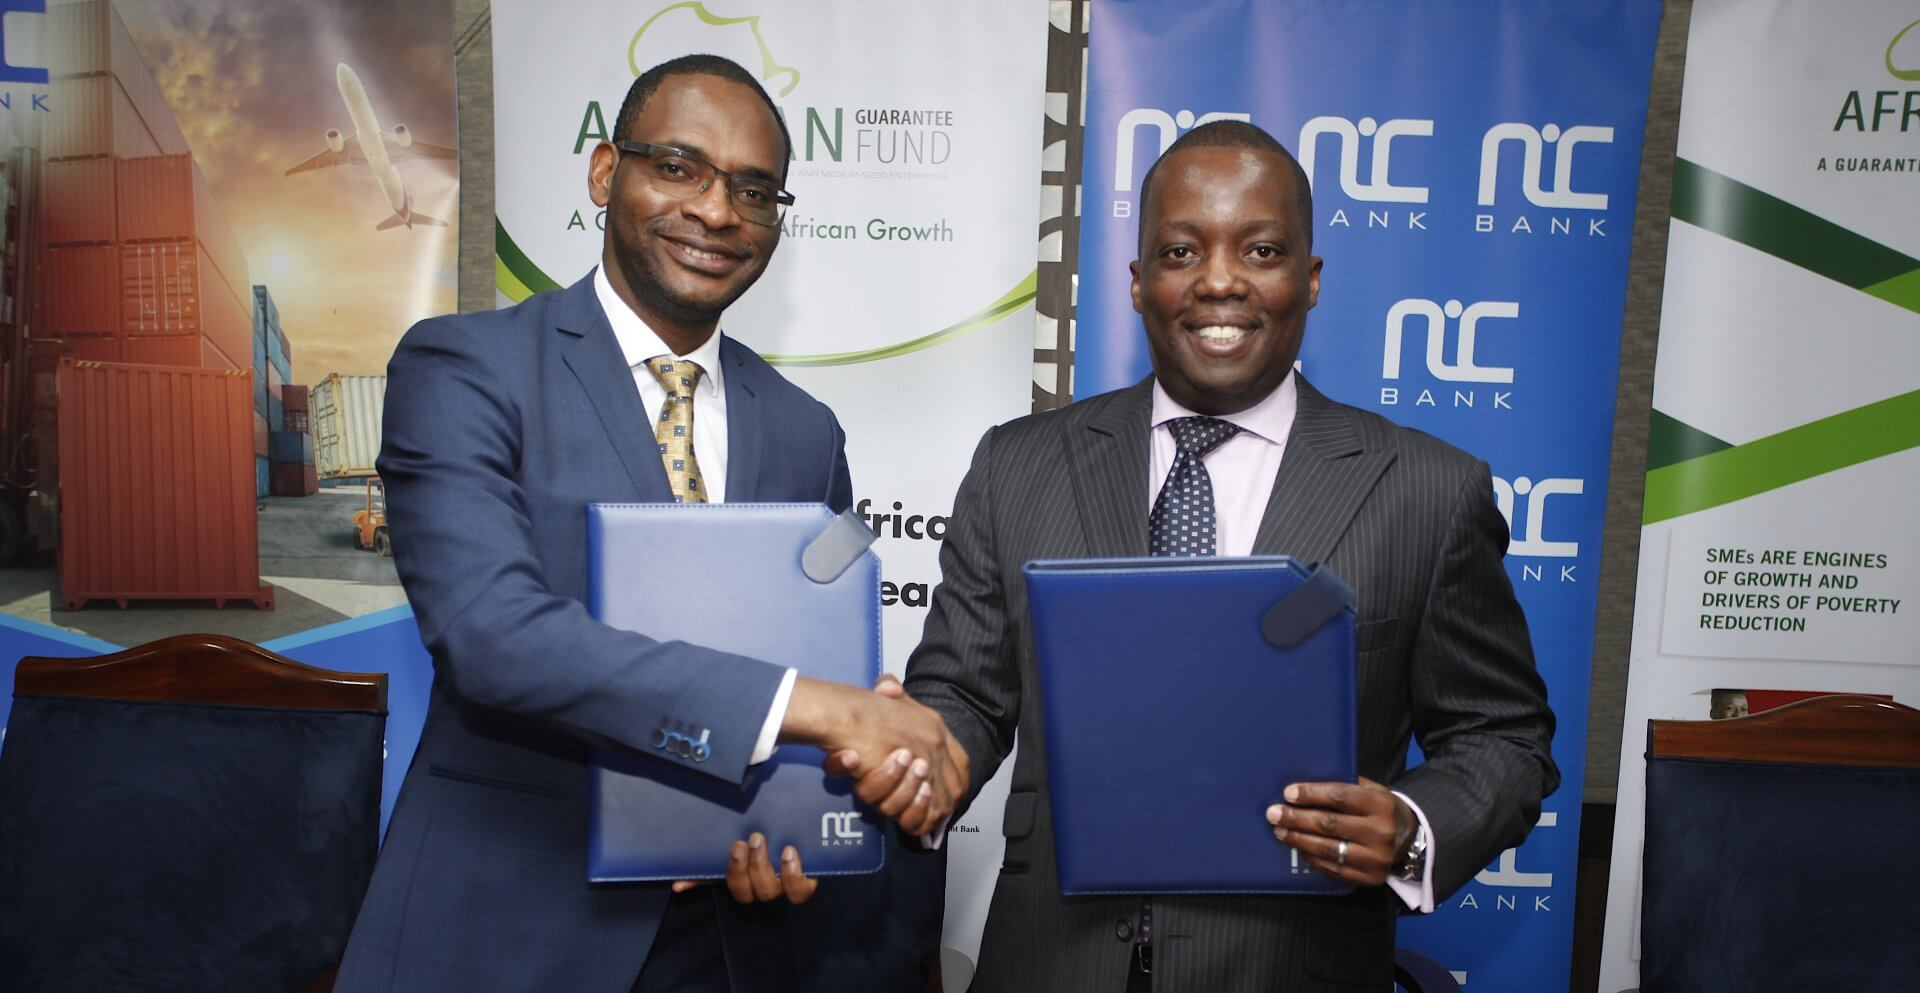 NIC BANK SIGNS A LOAN PORTFOLIO GUARANTEE WITH AGF